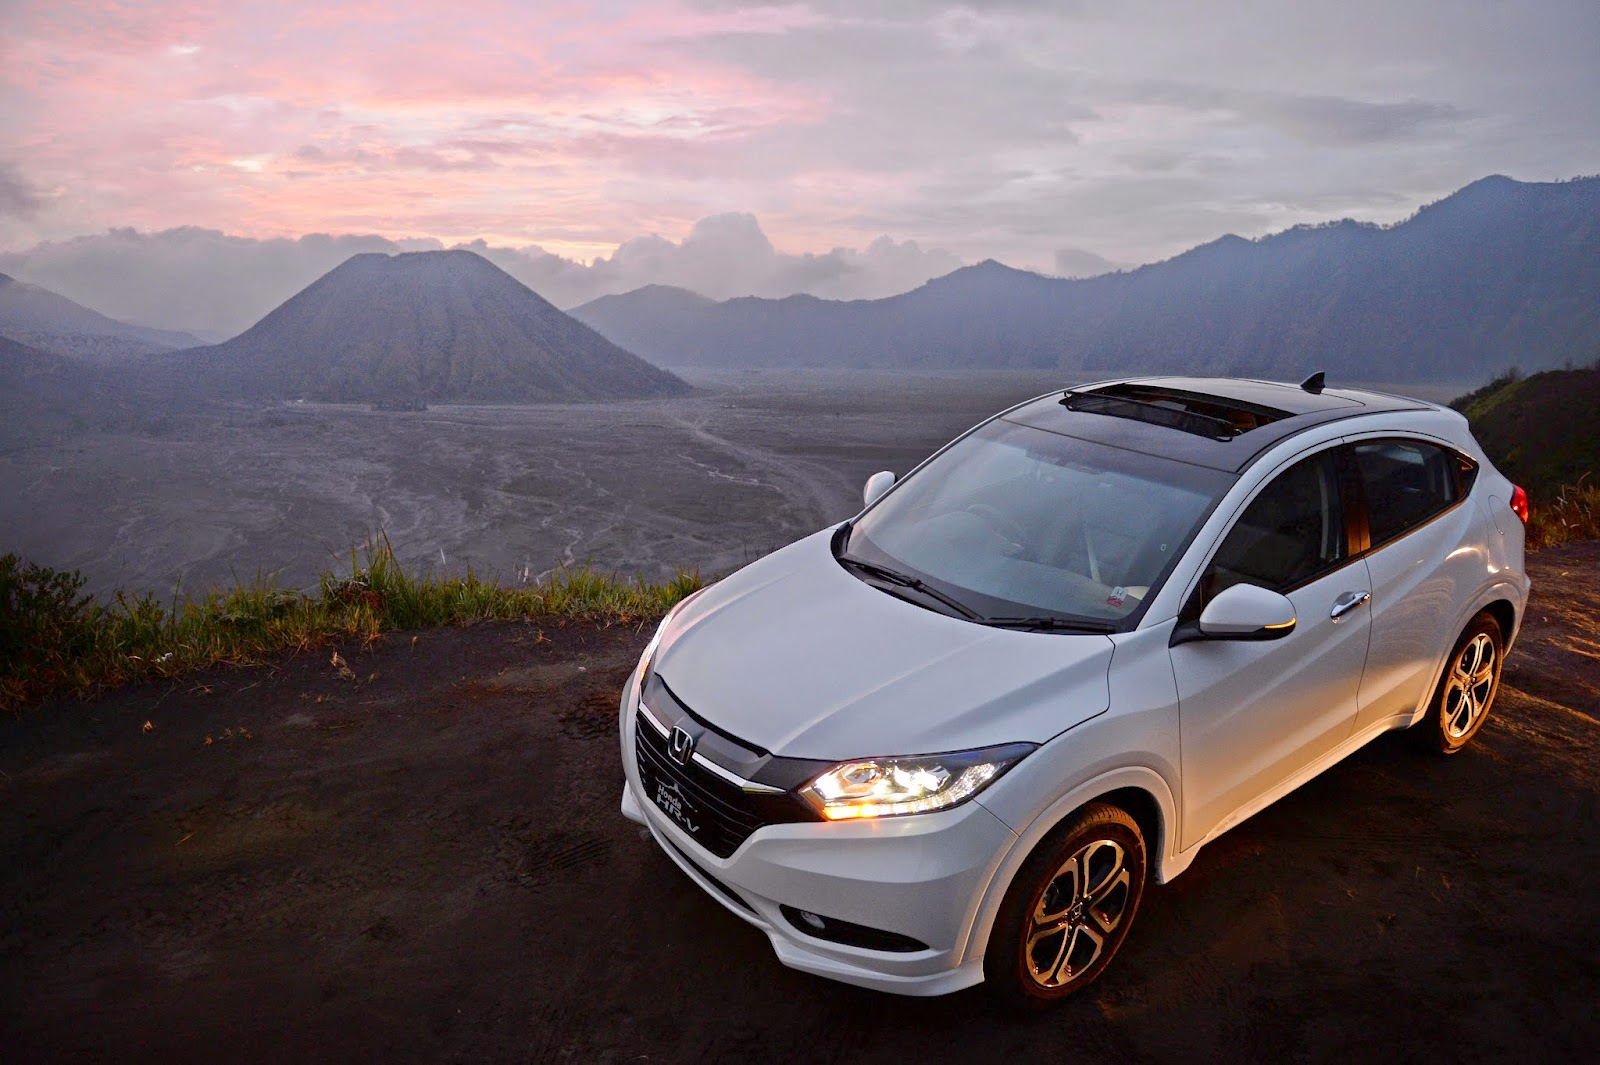 suv review - honda hr-v 2015 | yran4x4